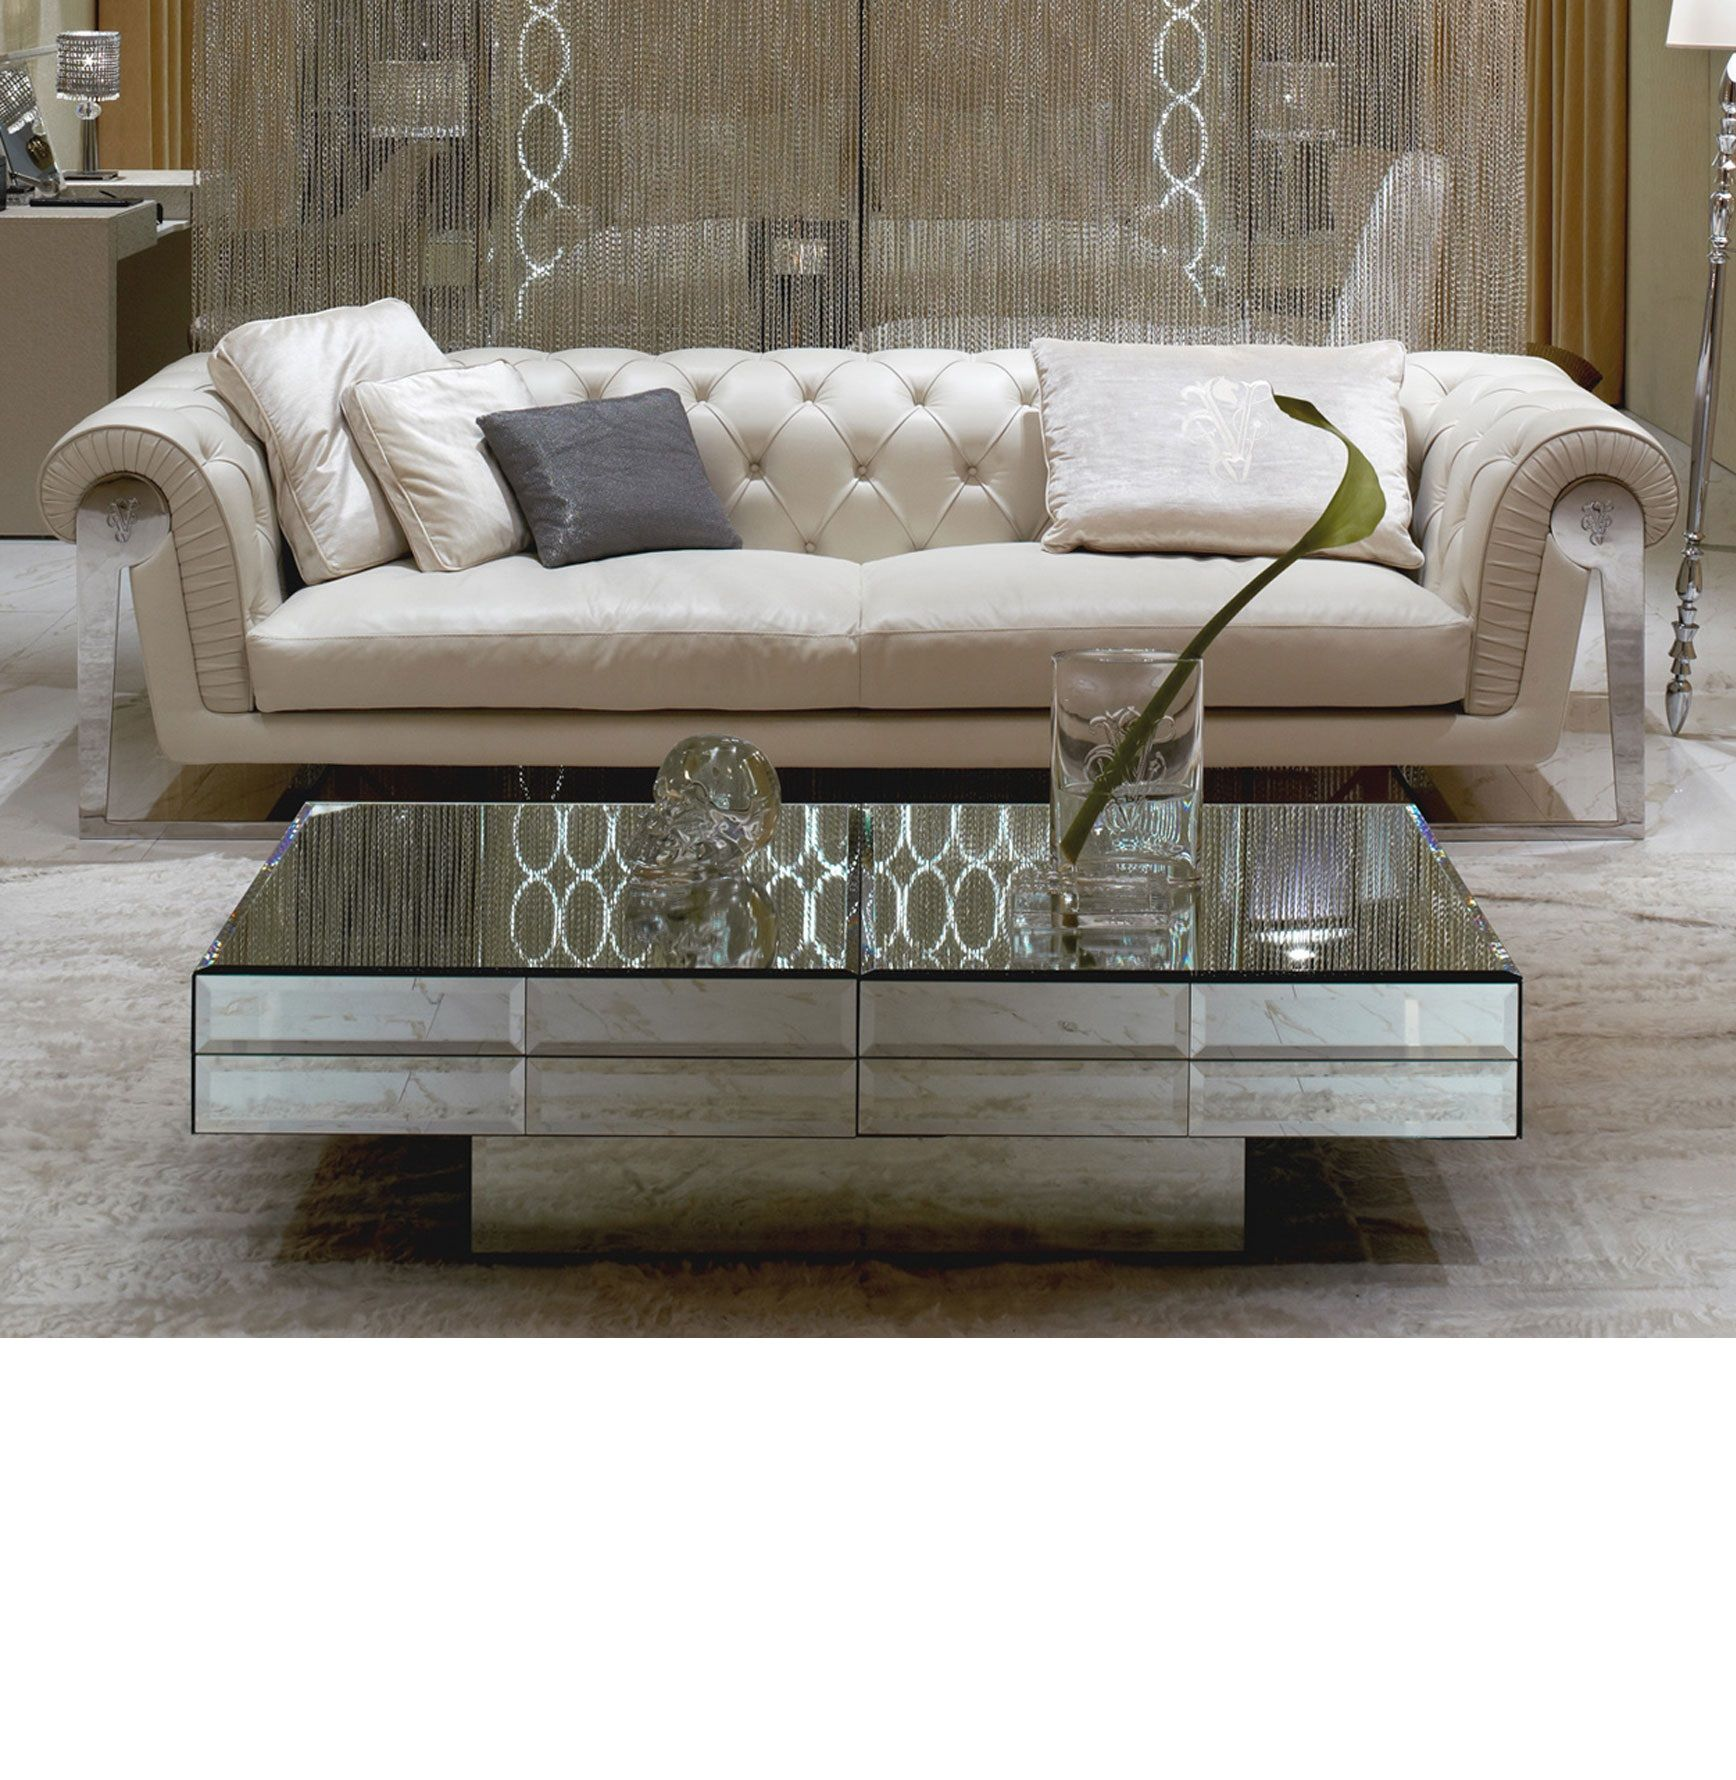 Instyle Decor Luxury Coffee Tables Tail